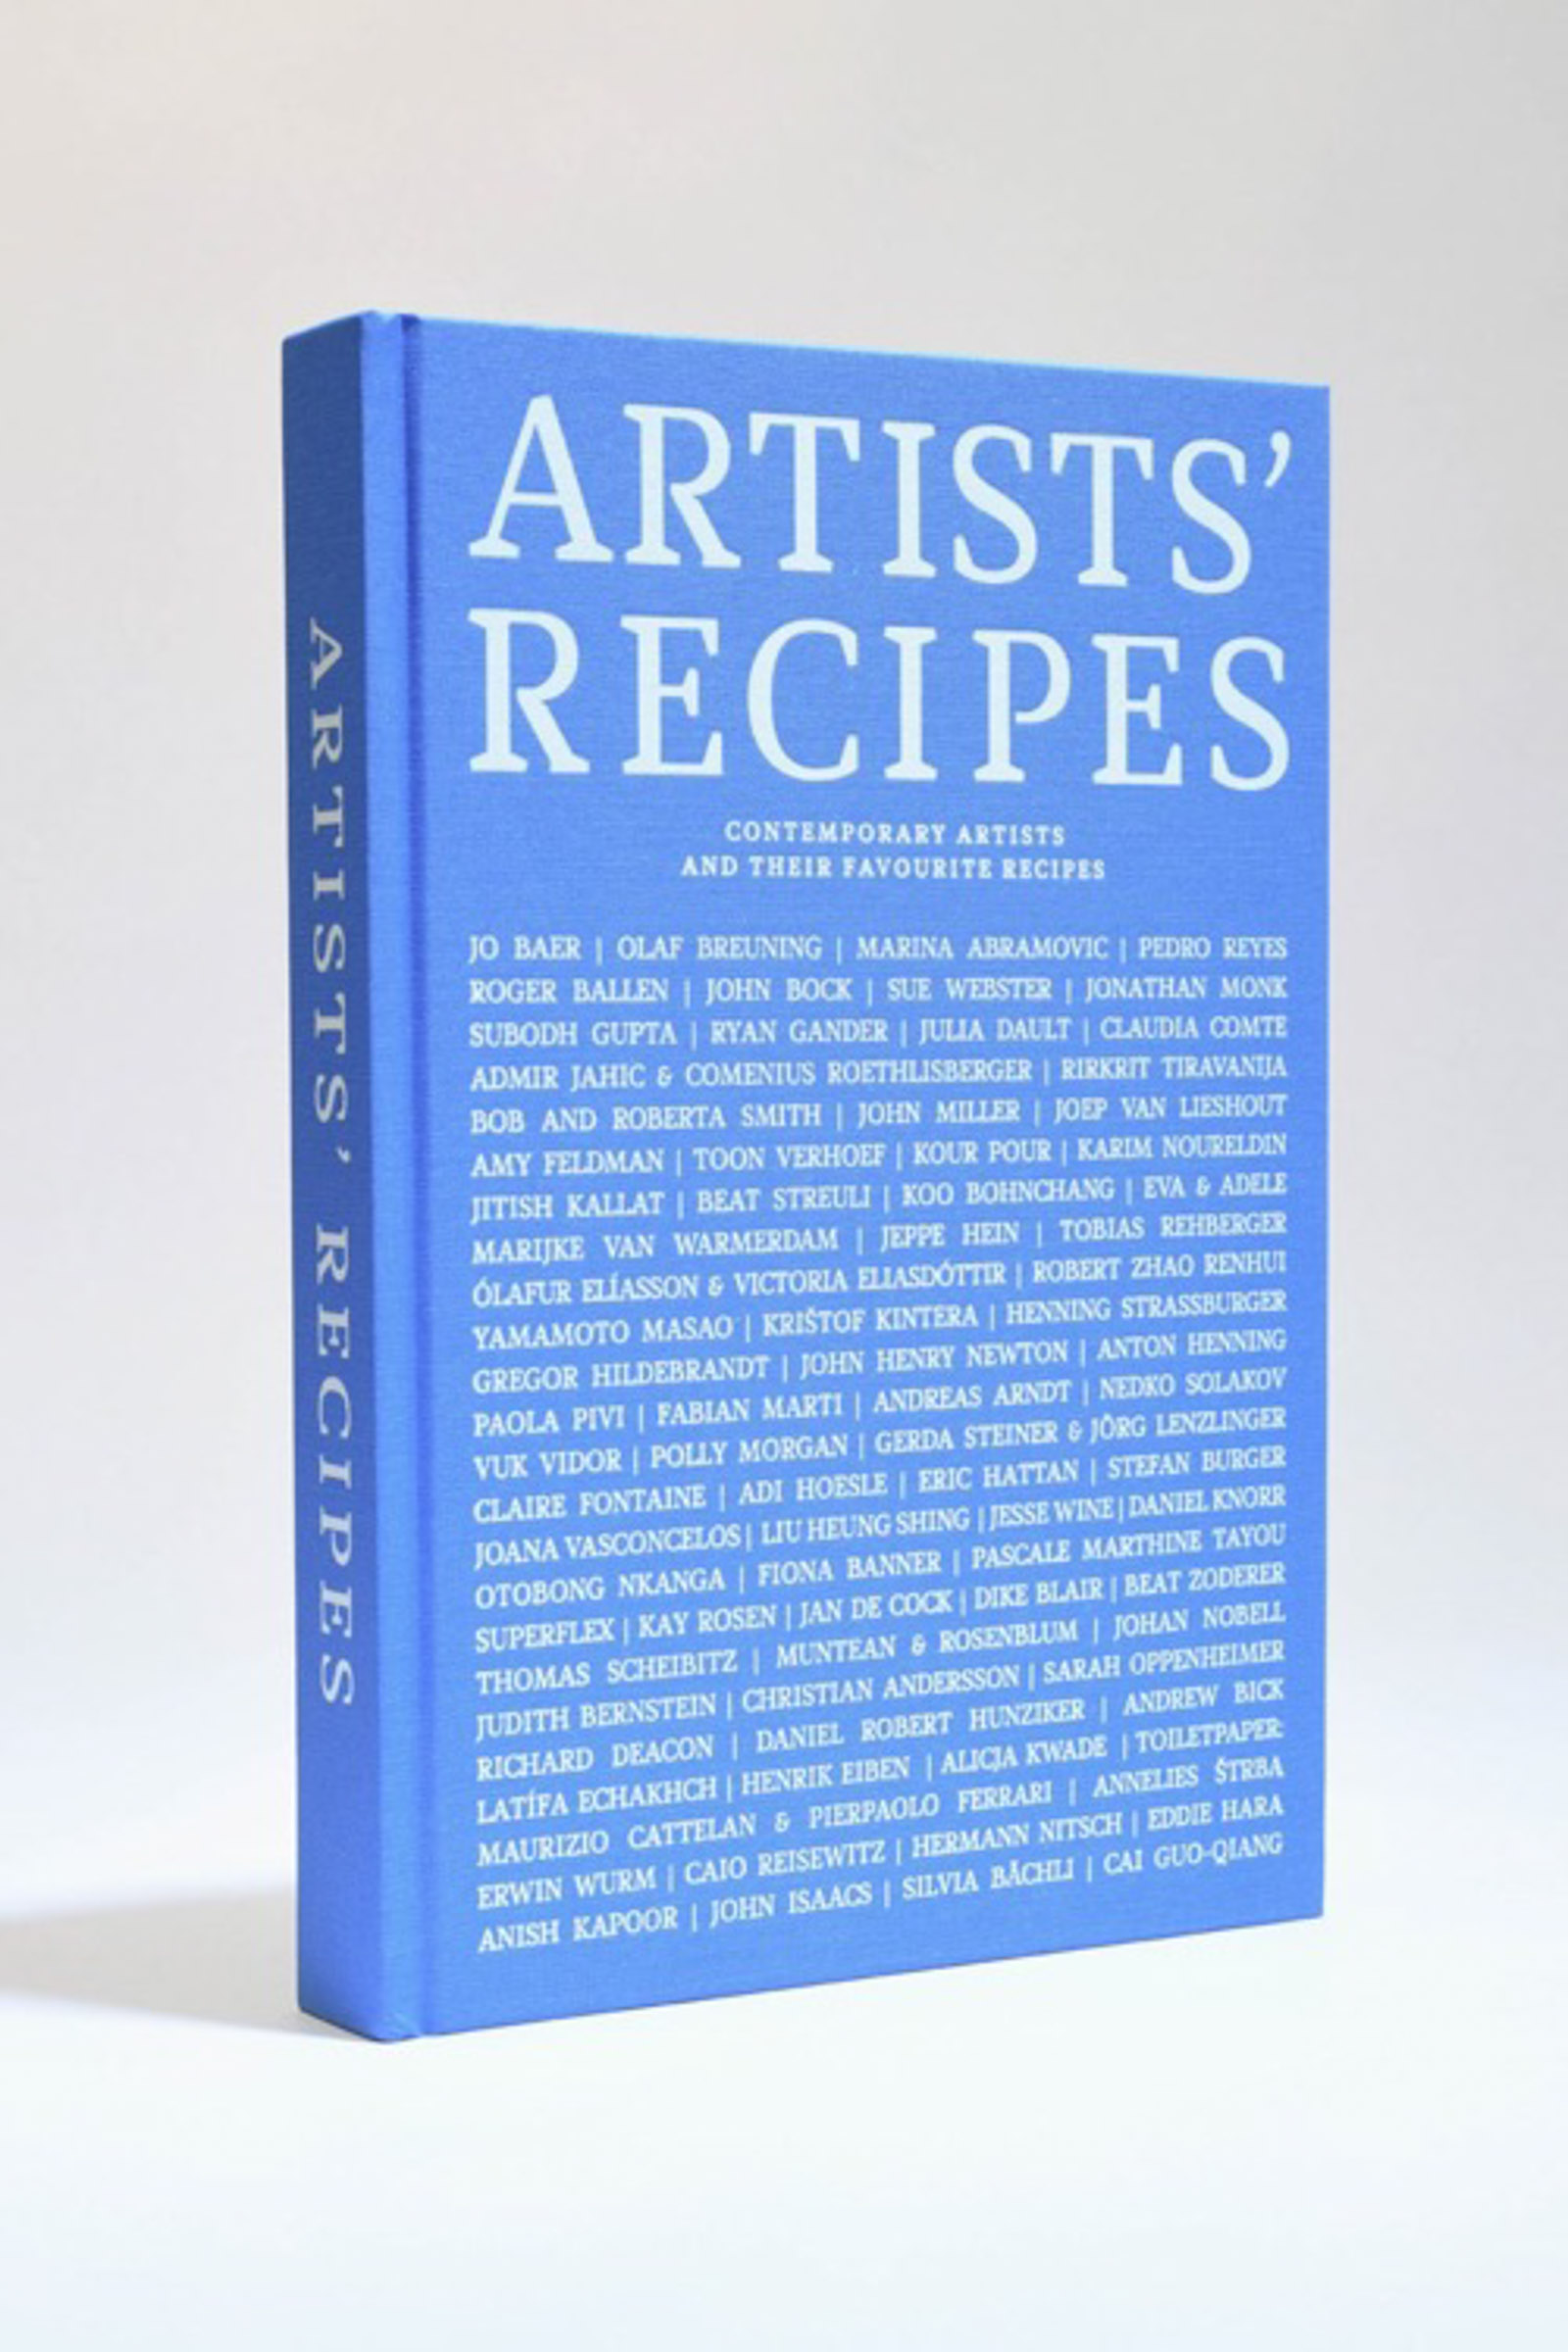 Publication by Artists' Recipes